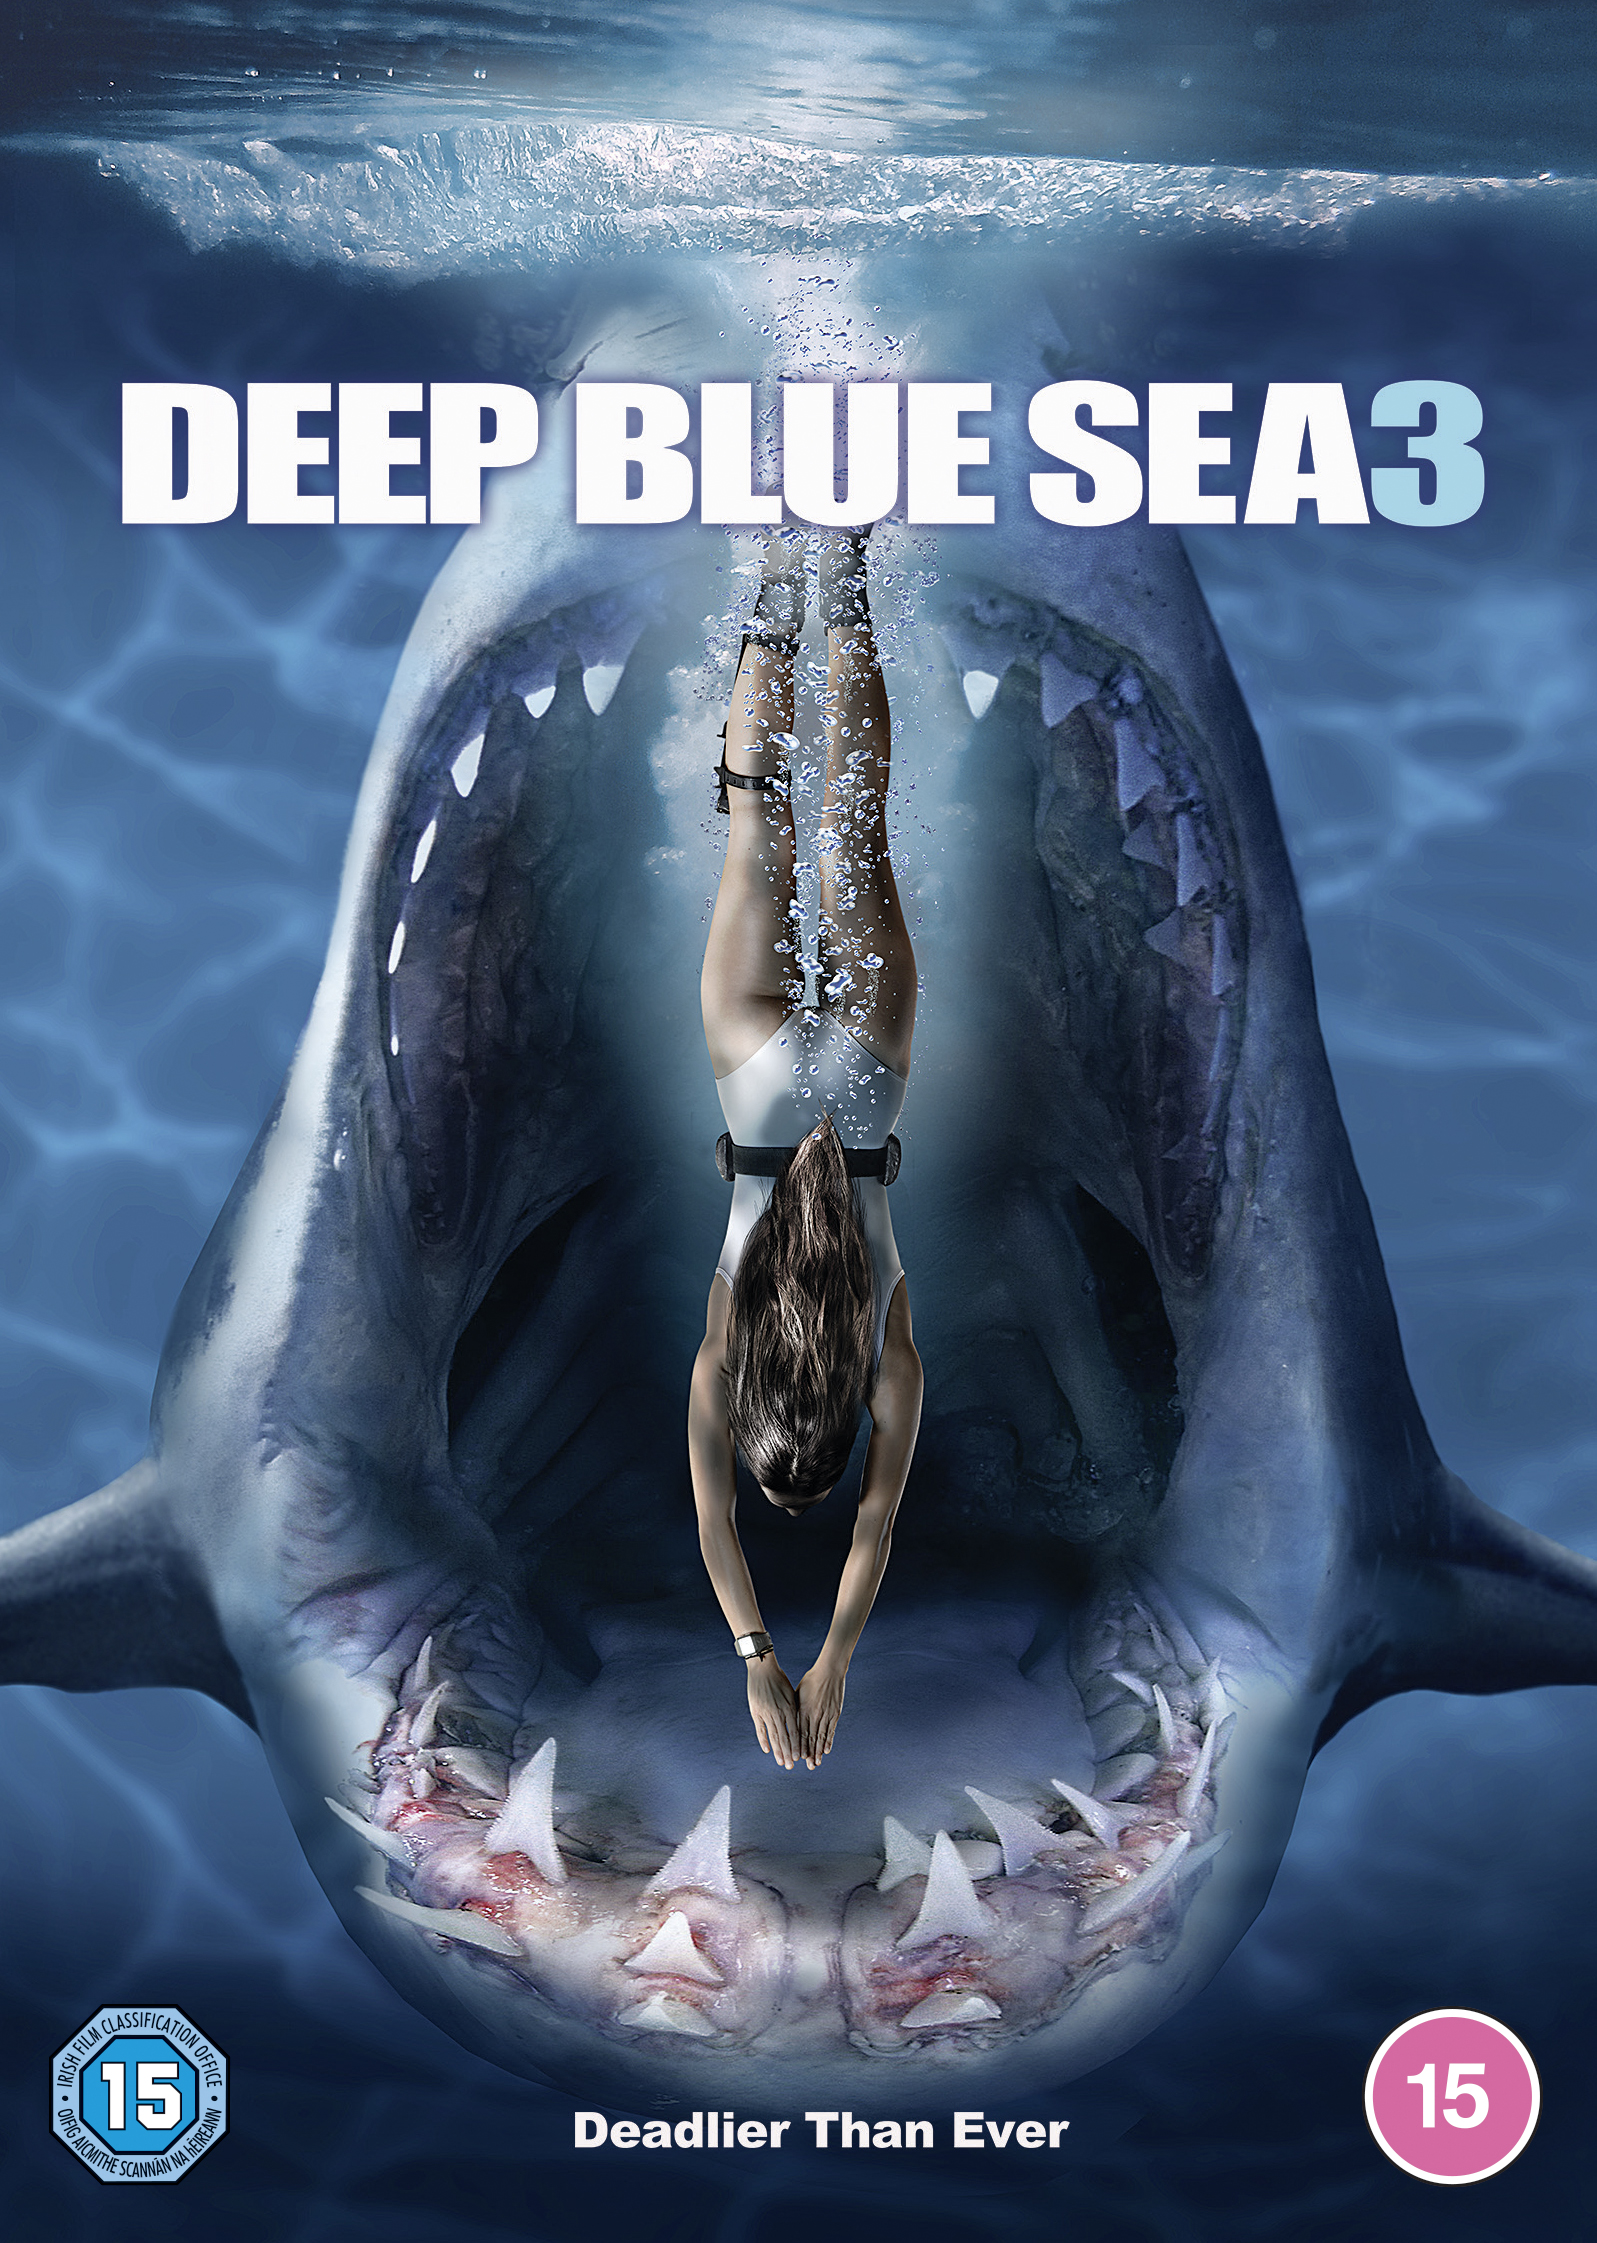 Deep Blue Sea 3: It's fintastic